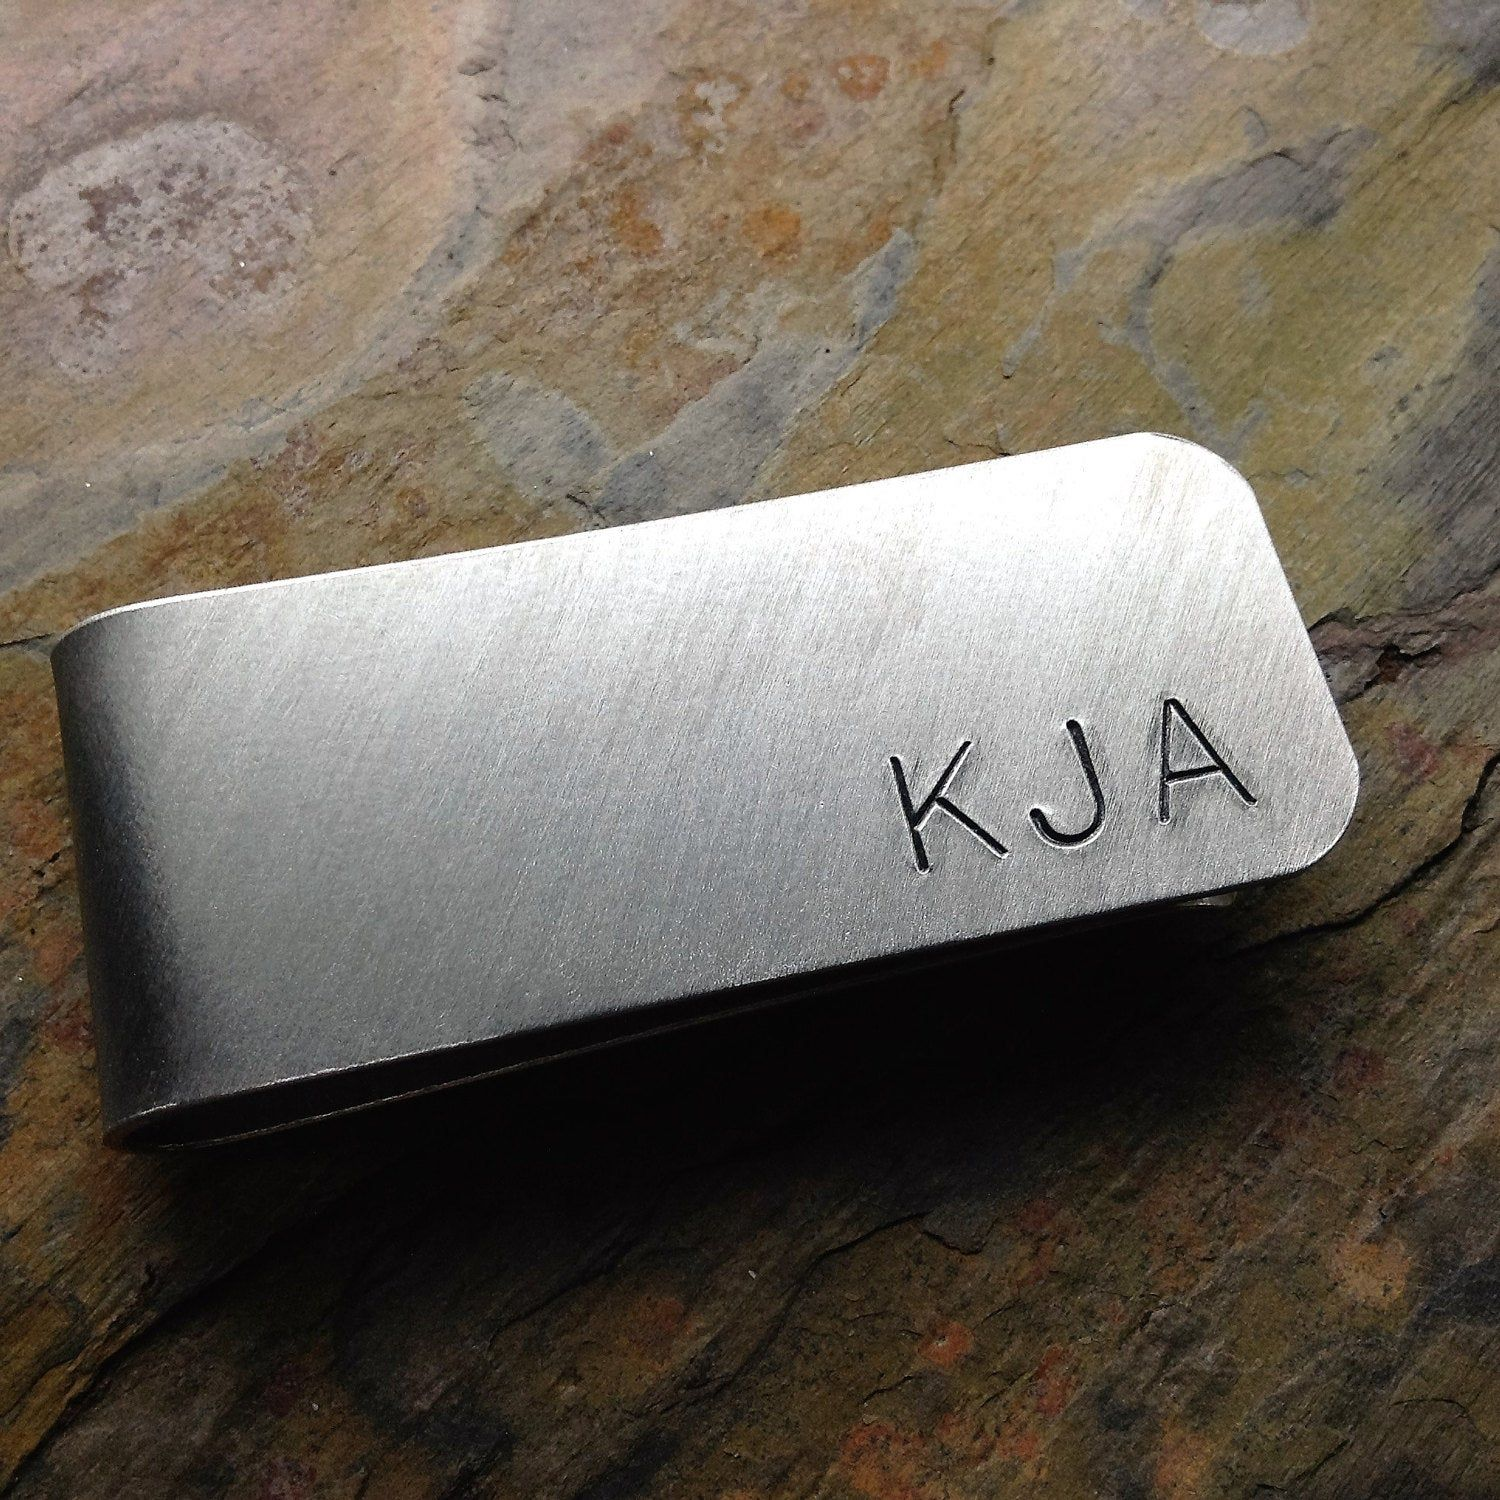 Engraved Clip Tie Bar .925 Sterling Silver Copper or Nu Gold Initials Monogram Name Personalized Fathers Day Grooms Wedding Party